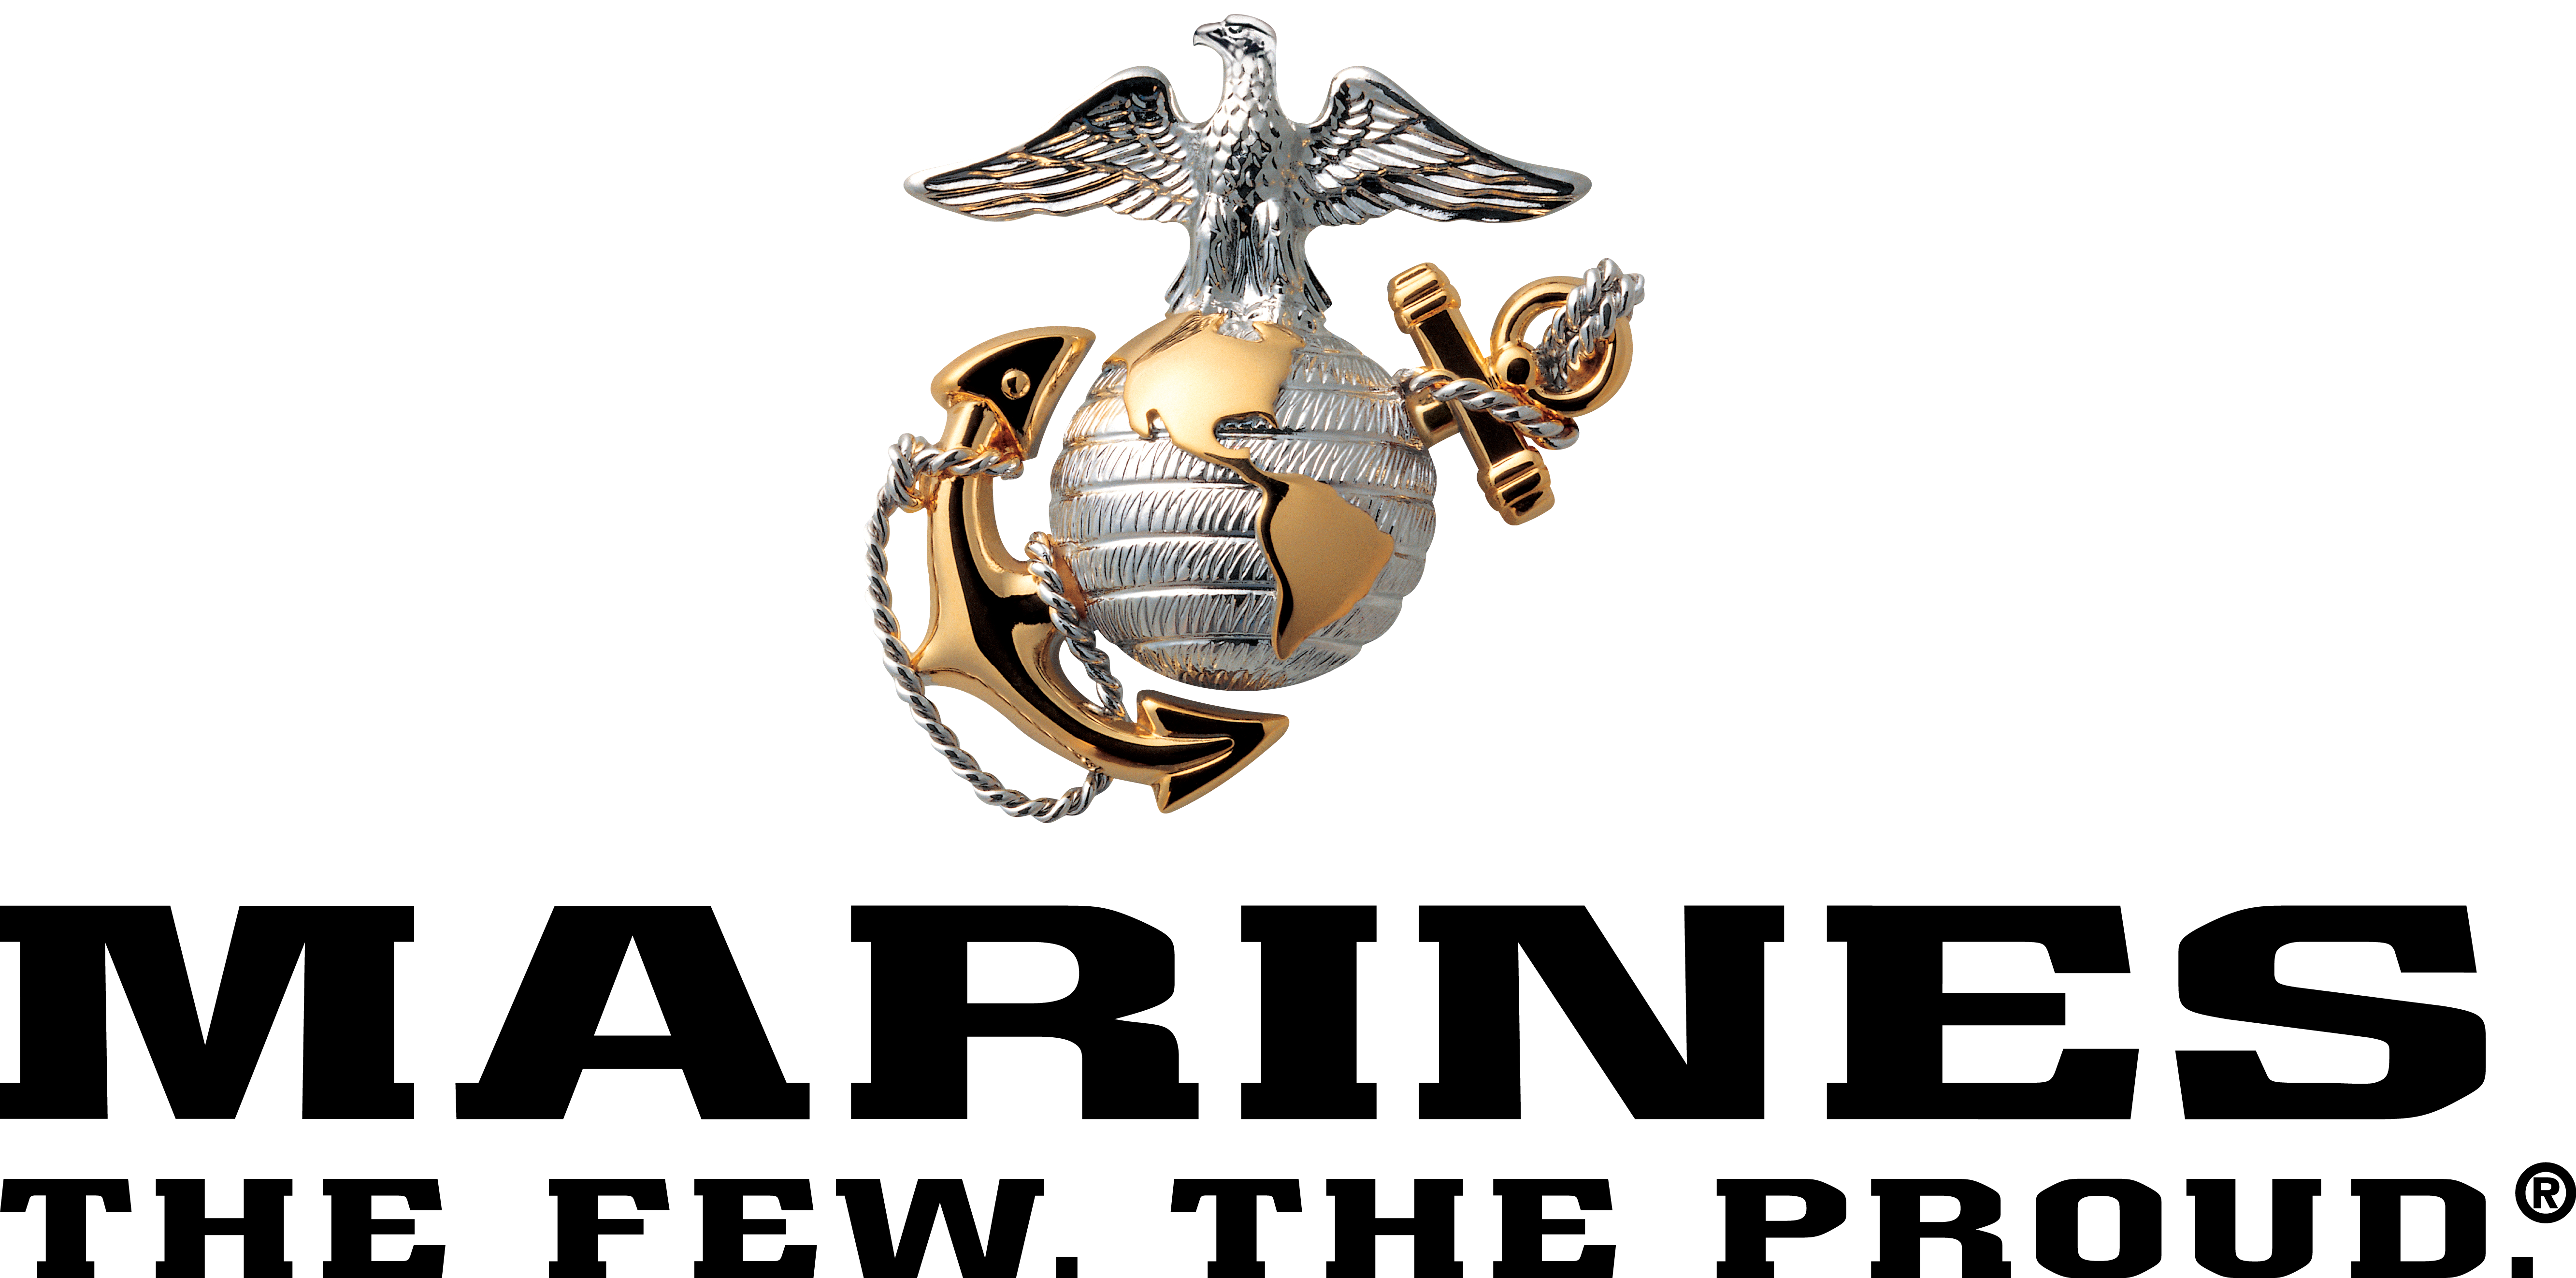 Marines Clipart | Free download best Marines Clipart on ClipArtMag com